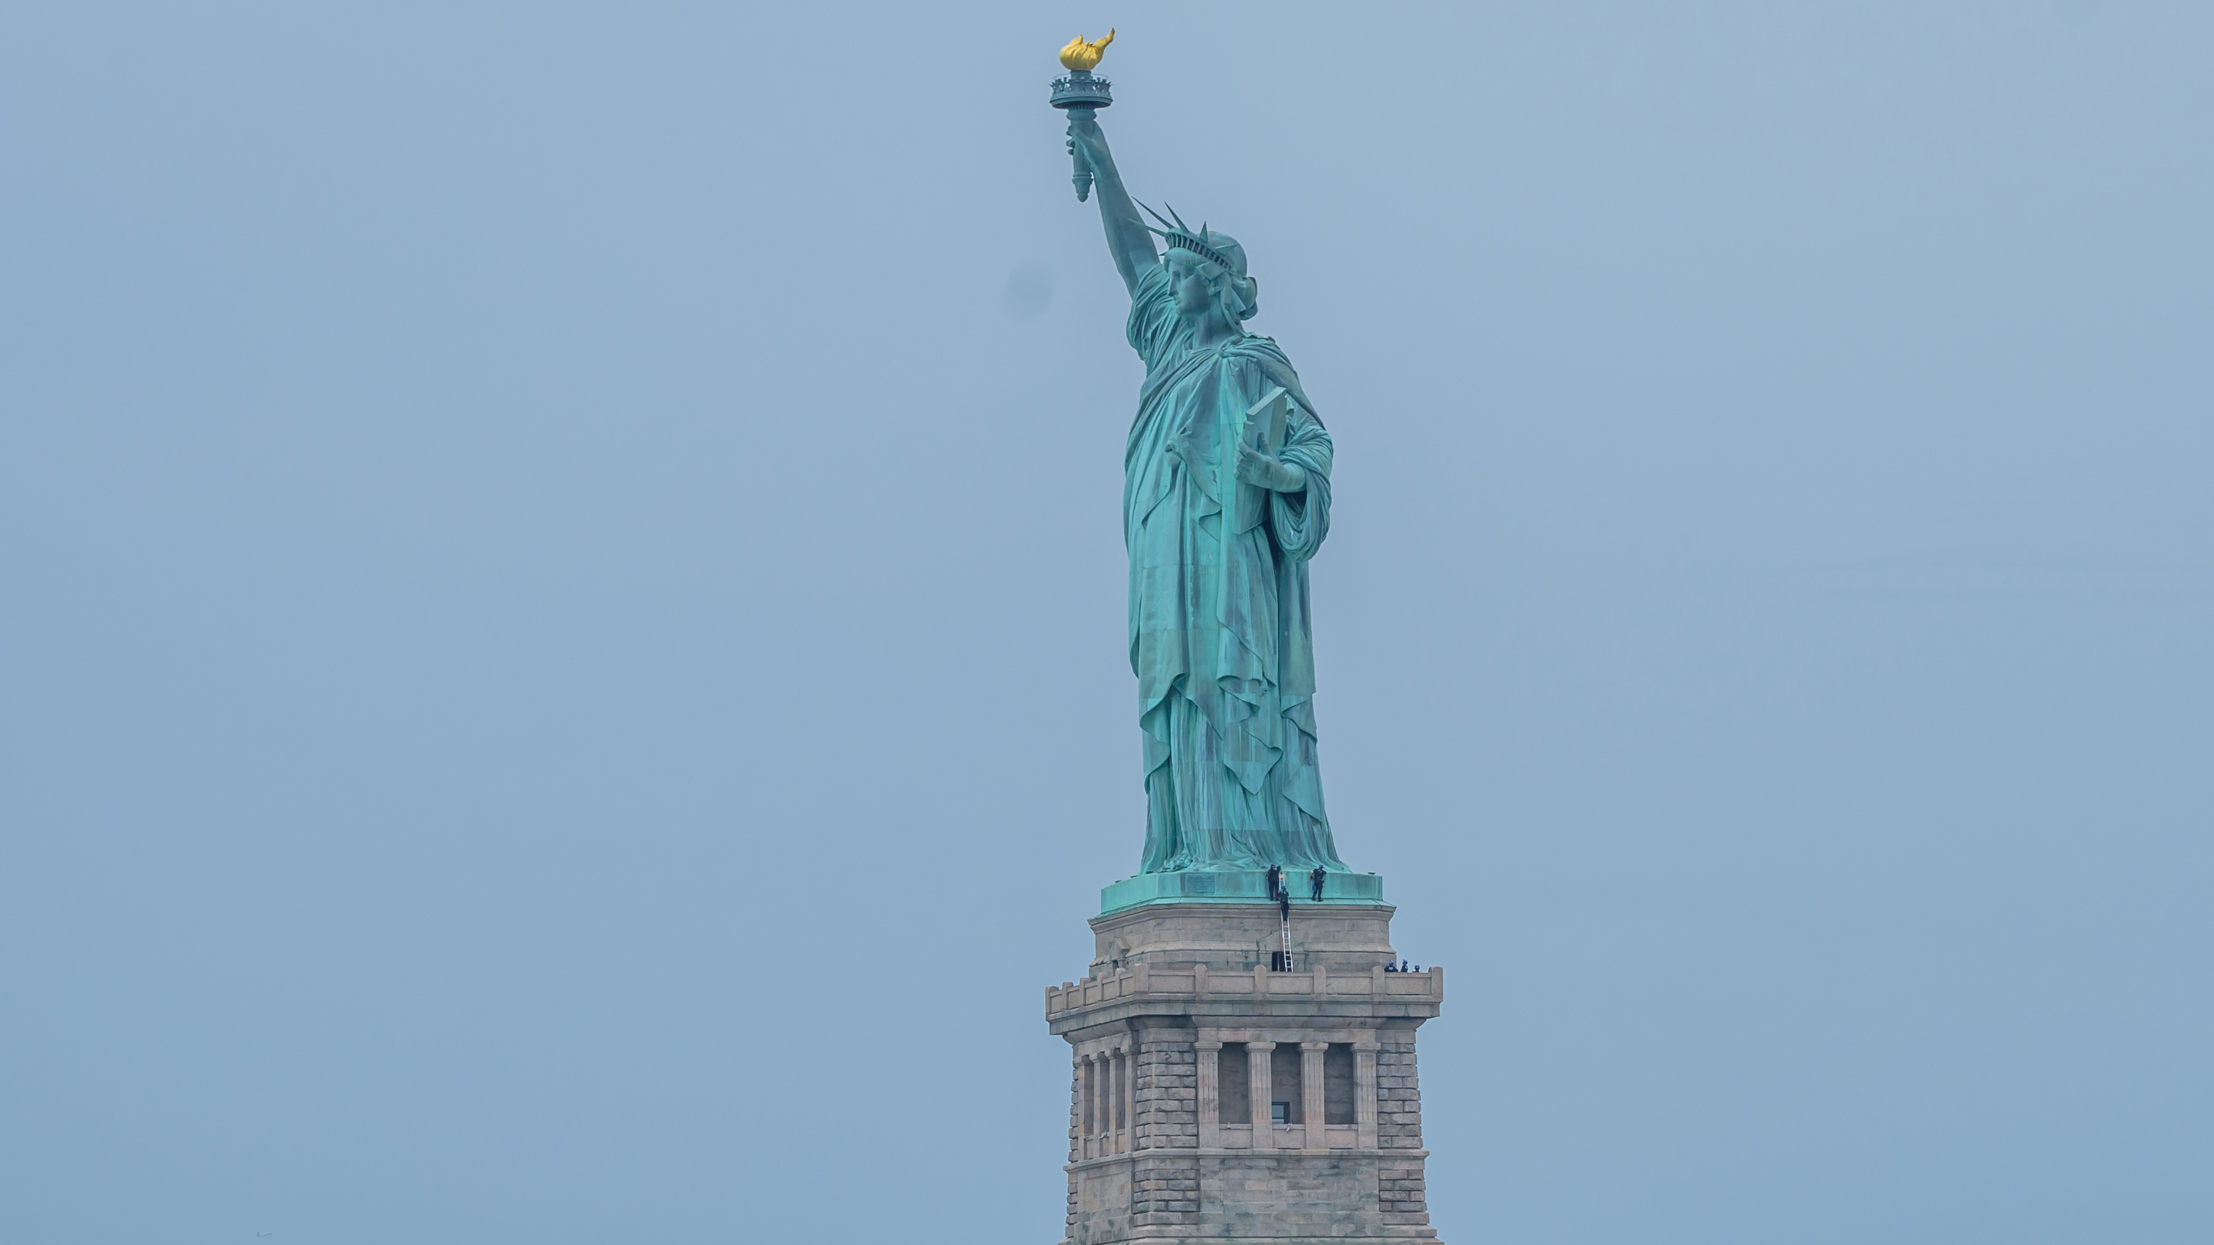 The Statue of Liberty Has Long Been a Magnet for Protest